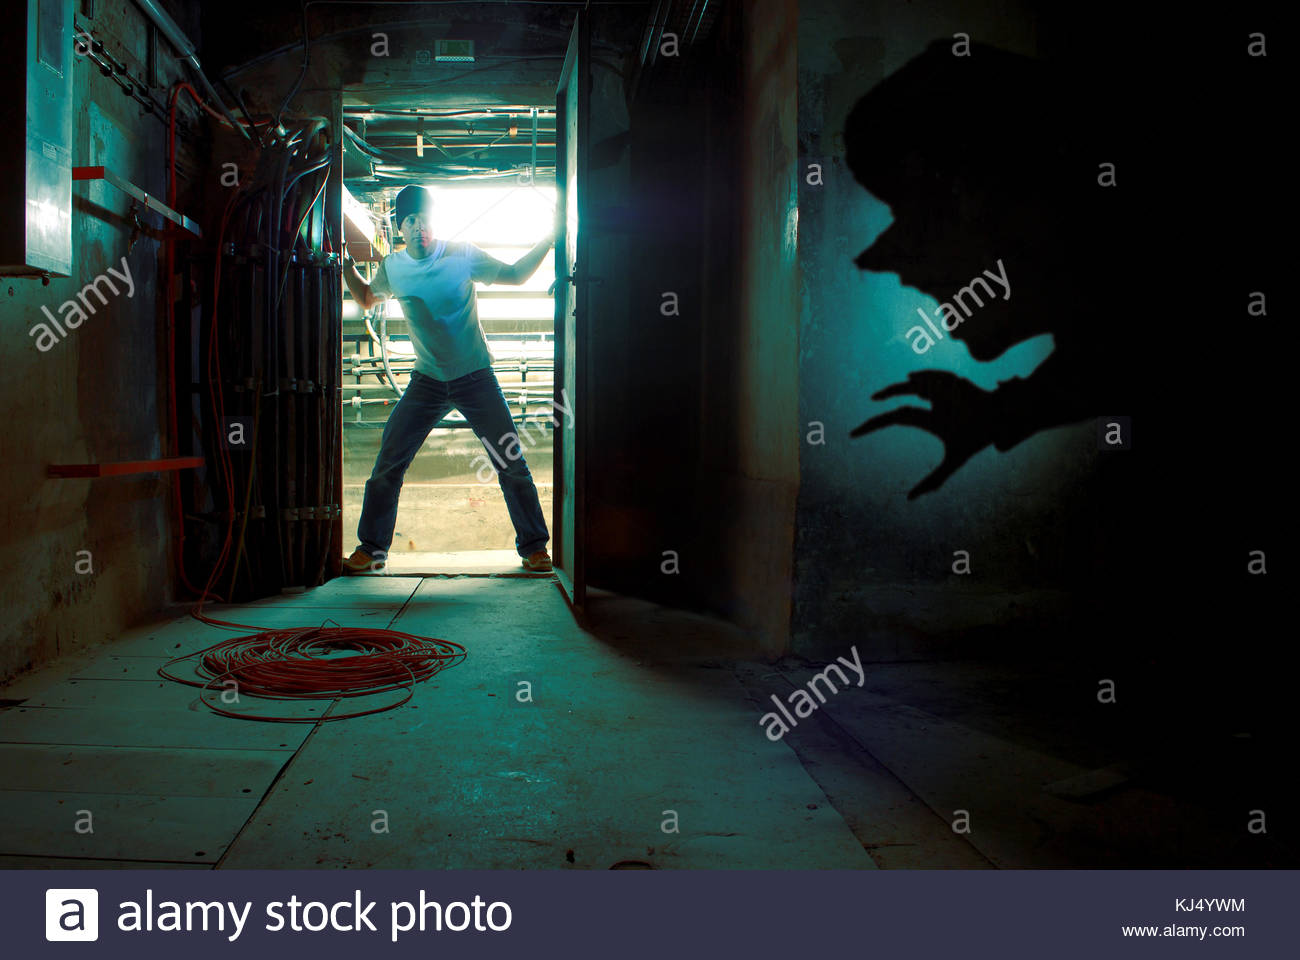 man in doorway with monster shadow stock photo 166066816 alamy